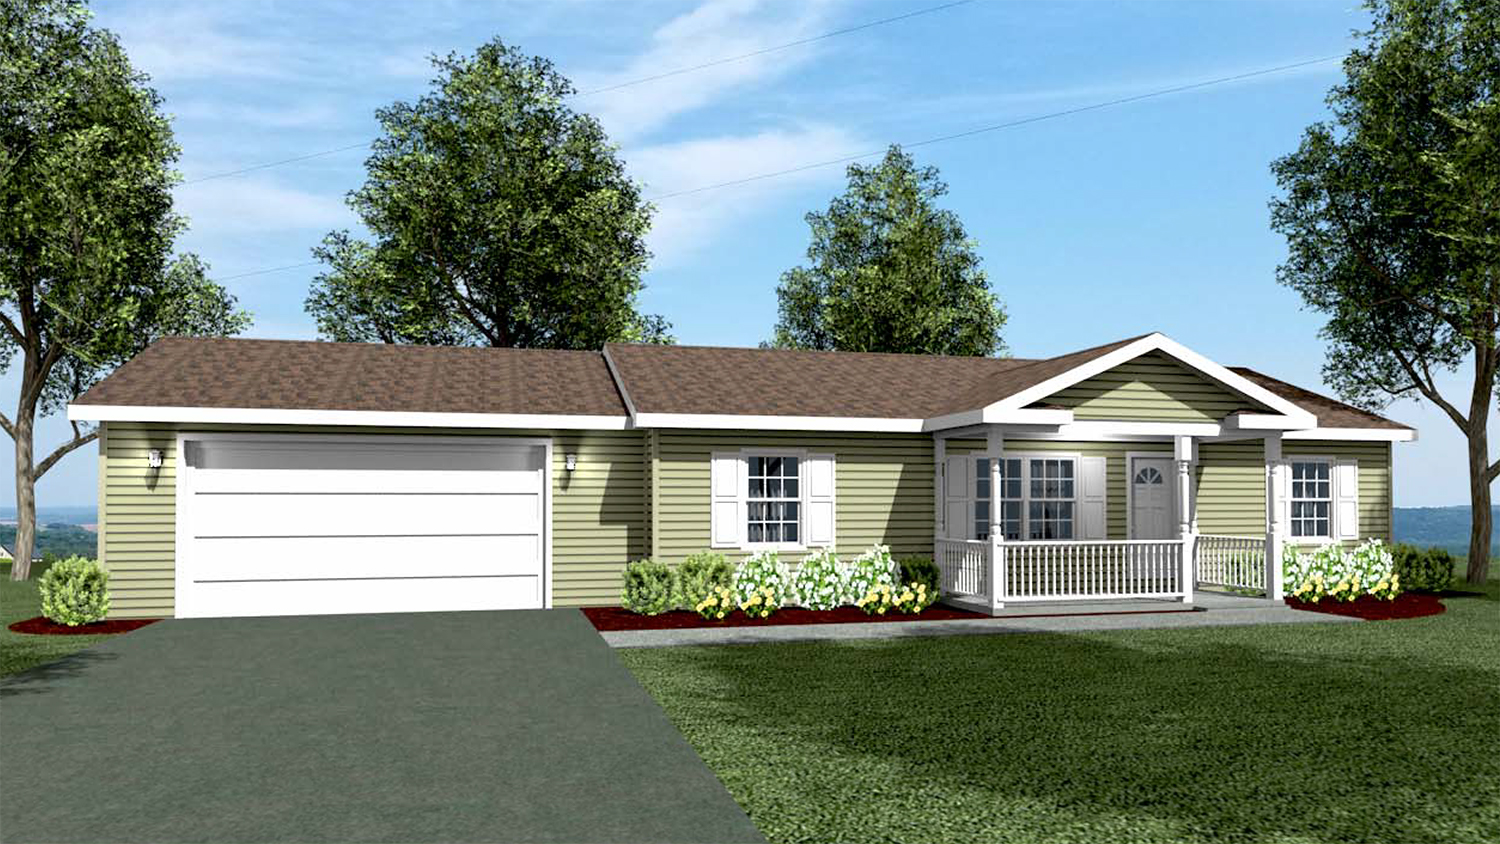 R001 Ranch Modular Home Model Rendering Front 01